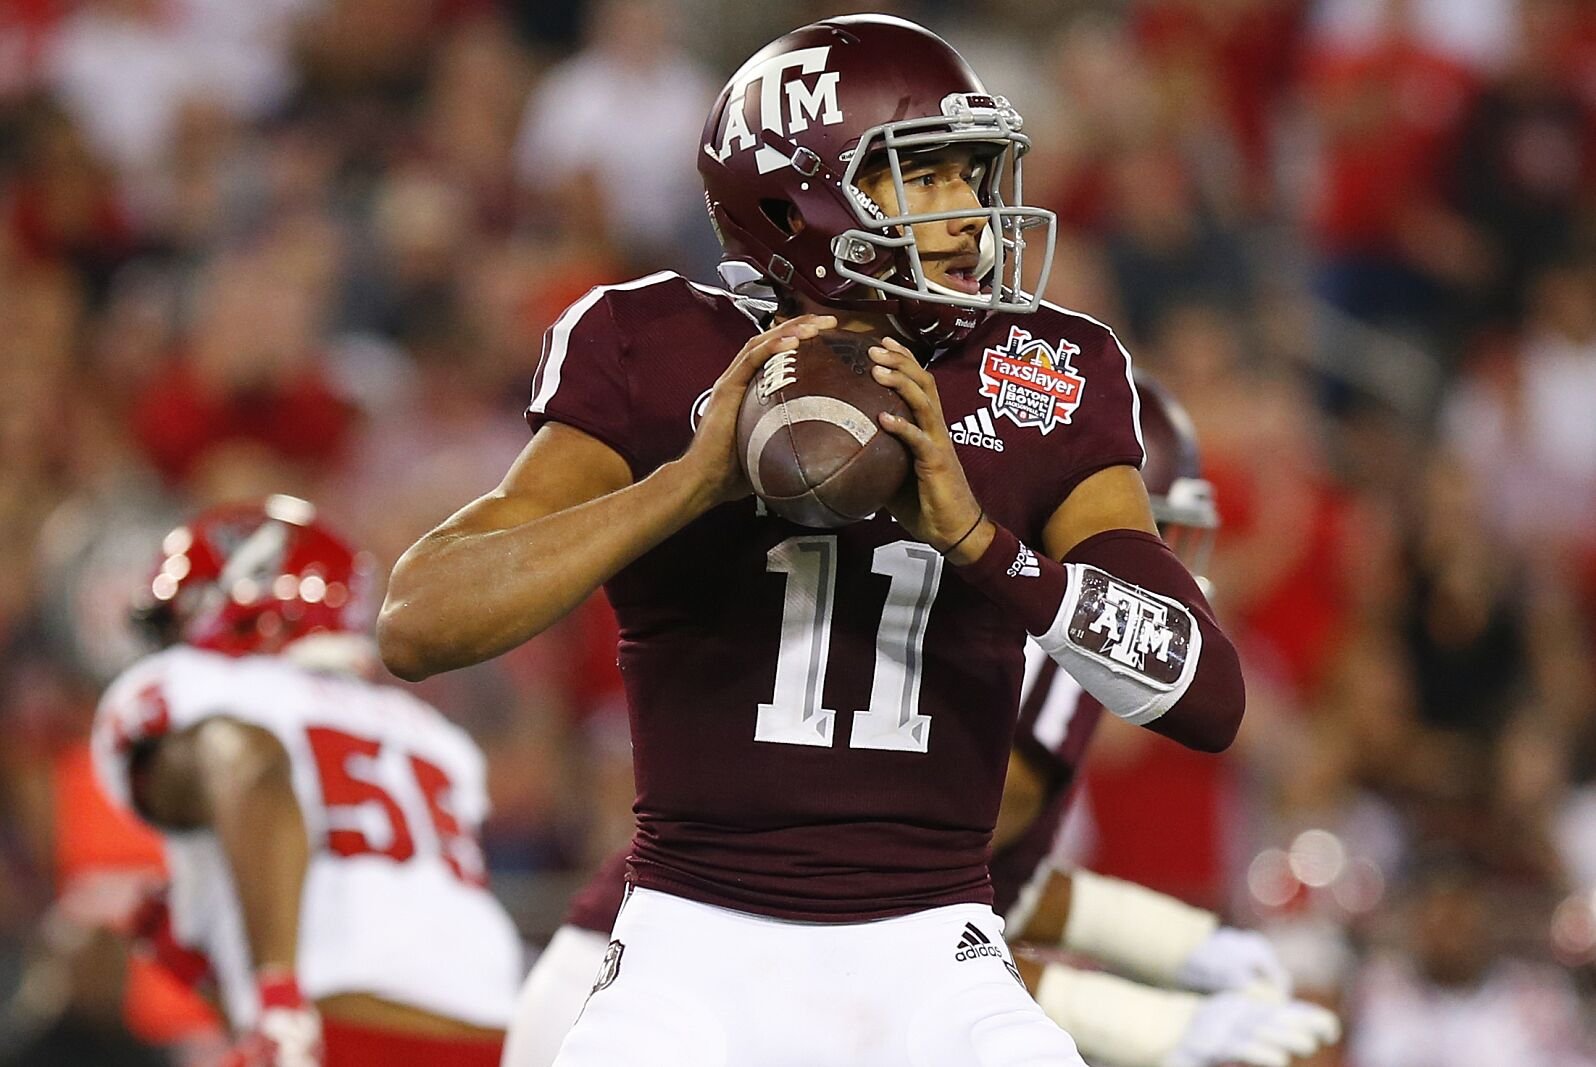 Texas A&M football: Projecting the 2019 quarterback depth chart